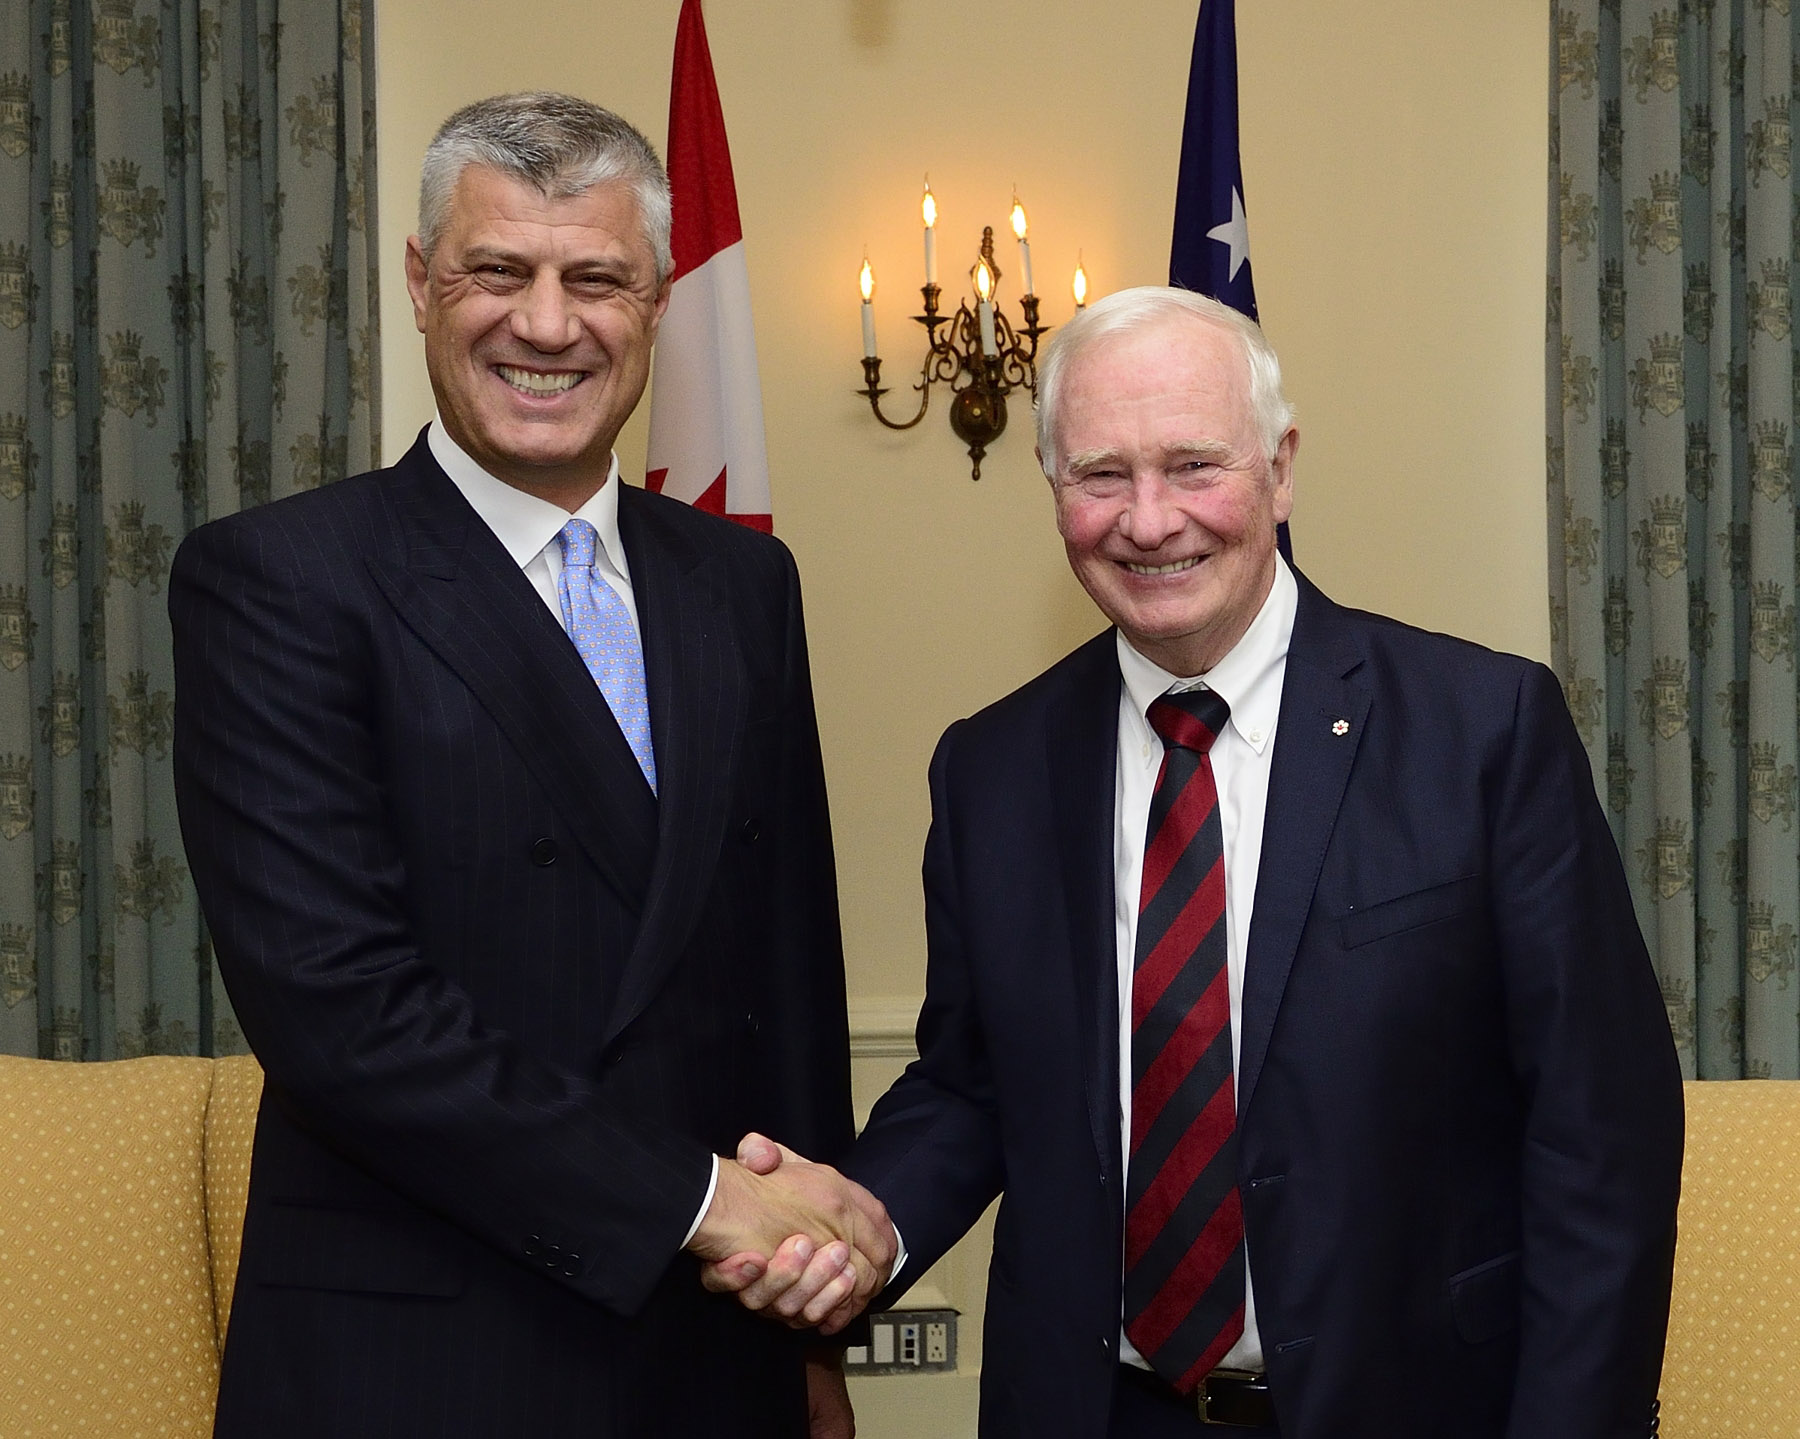 The Governor General met with Hashim Thaçi, the President of the Republic of Kosovo while in Toronto.